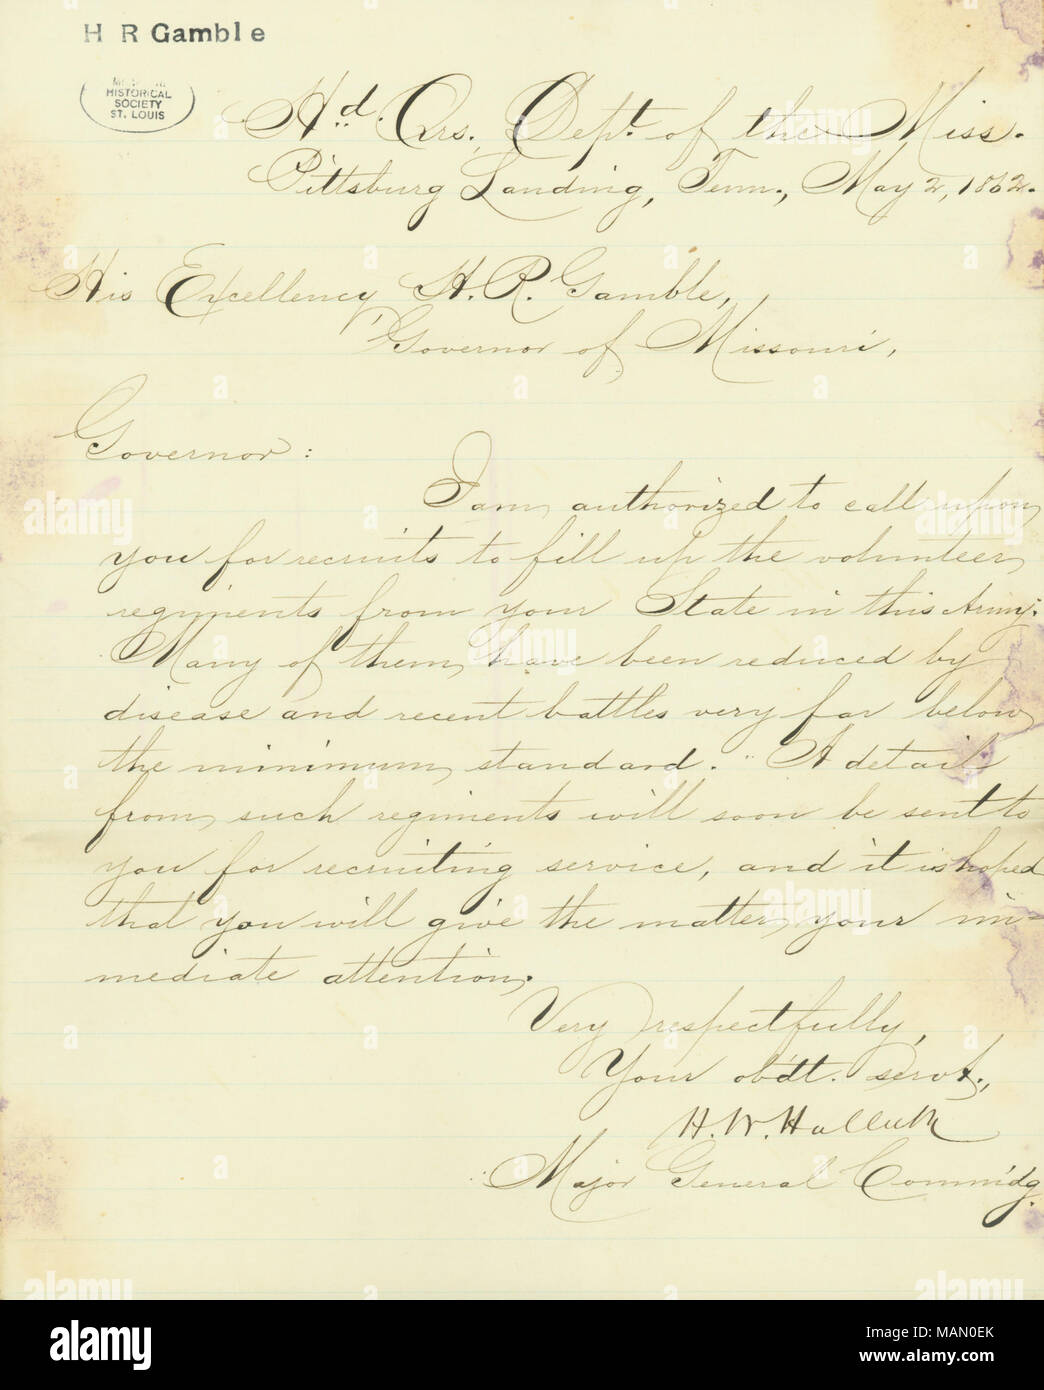 Regarding a call to recruit volunteers to fill the ranks of missouri regarding a call to recruit volunteers to fill the ranks of missouri regiments lost to disease or recent battle title letter signed hw halleck altavistaventures Choice Image